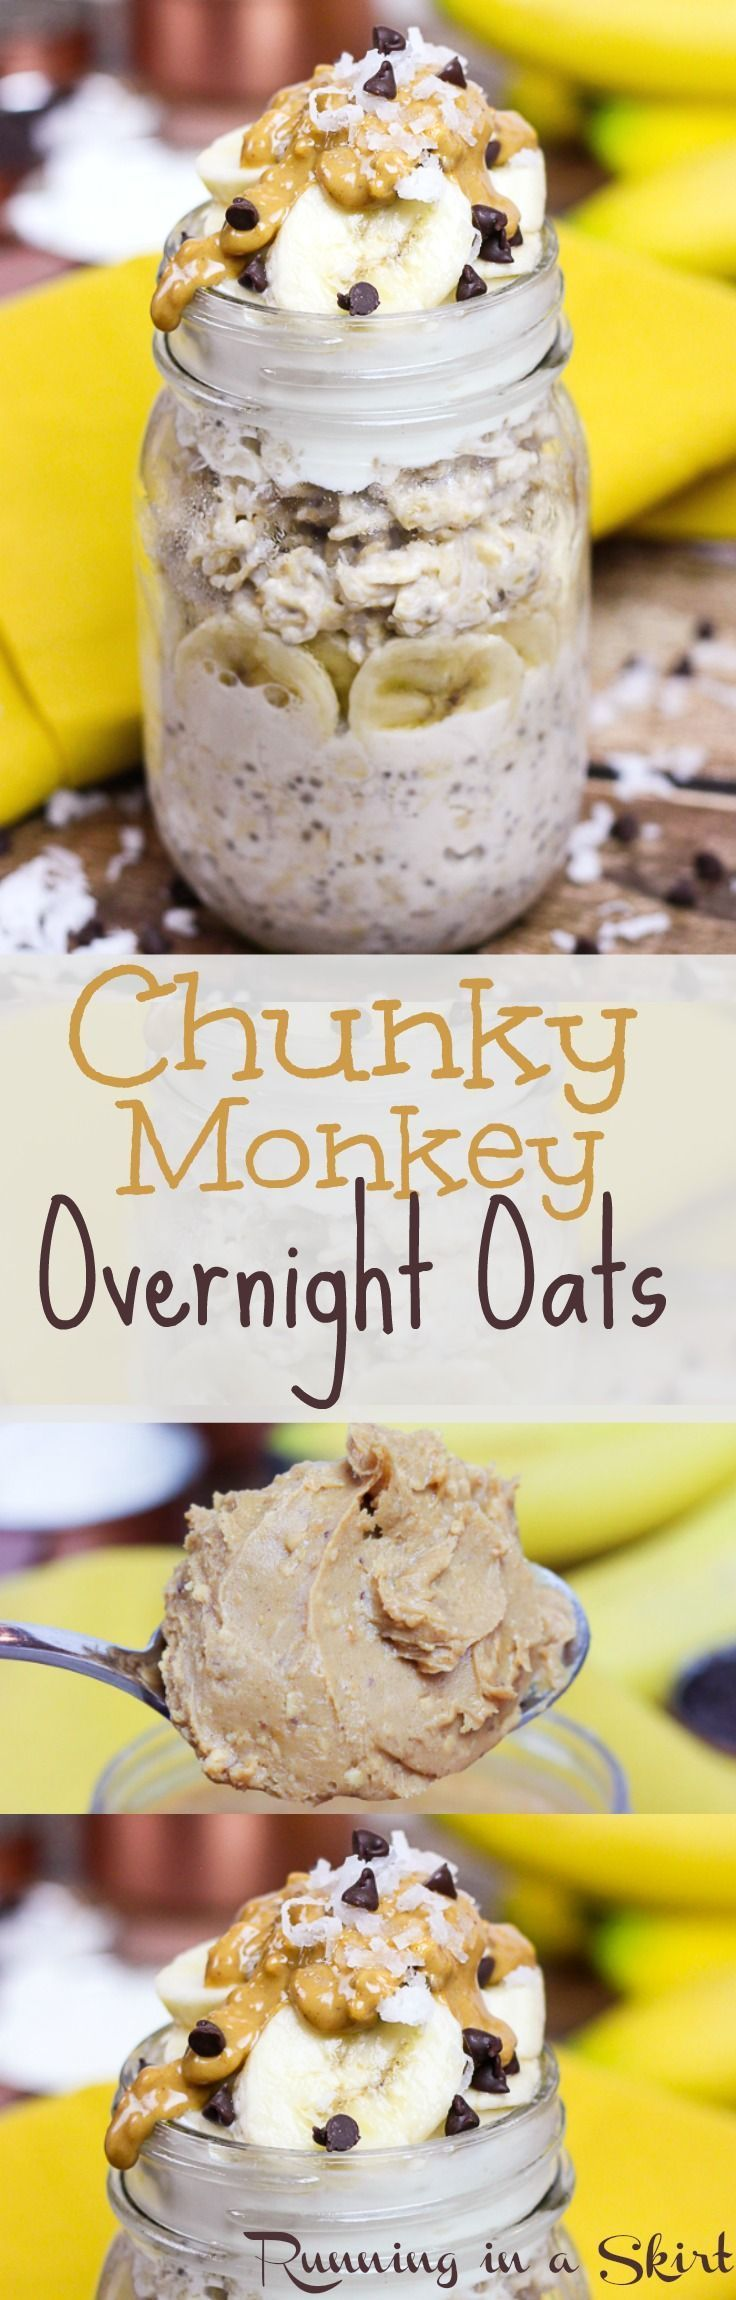 Peanut Butter Chunky Monkey Overnight Oats.  A healthy breakfast recipe in a jar!  Easy, simple and clean eating with chia seeds, almond milk, greek yogurt (use dairy-free!), chocolate chips and bananas!  The best way to eat oats and one of my favorite healthy recipes. / Running in a Skirt